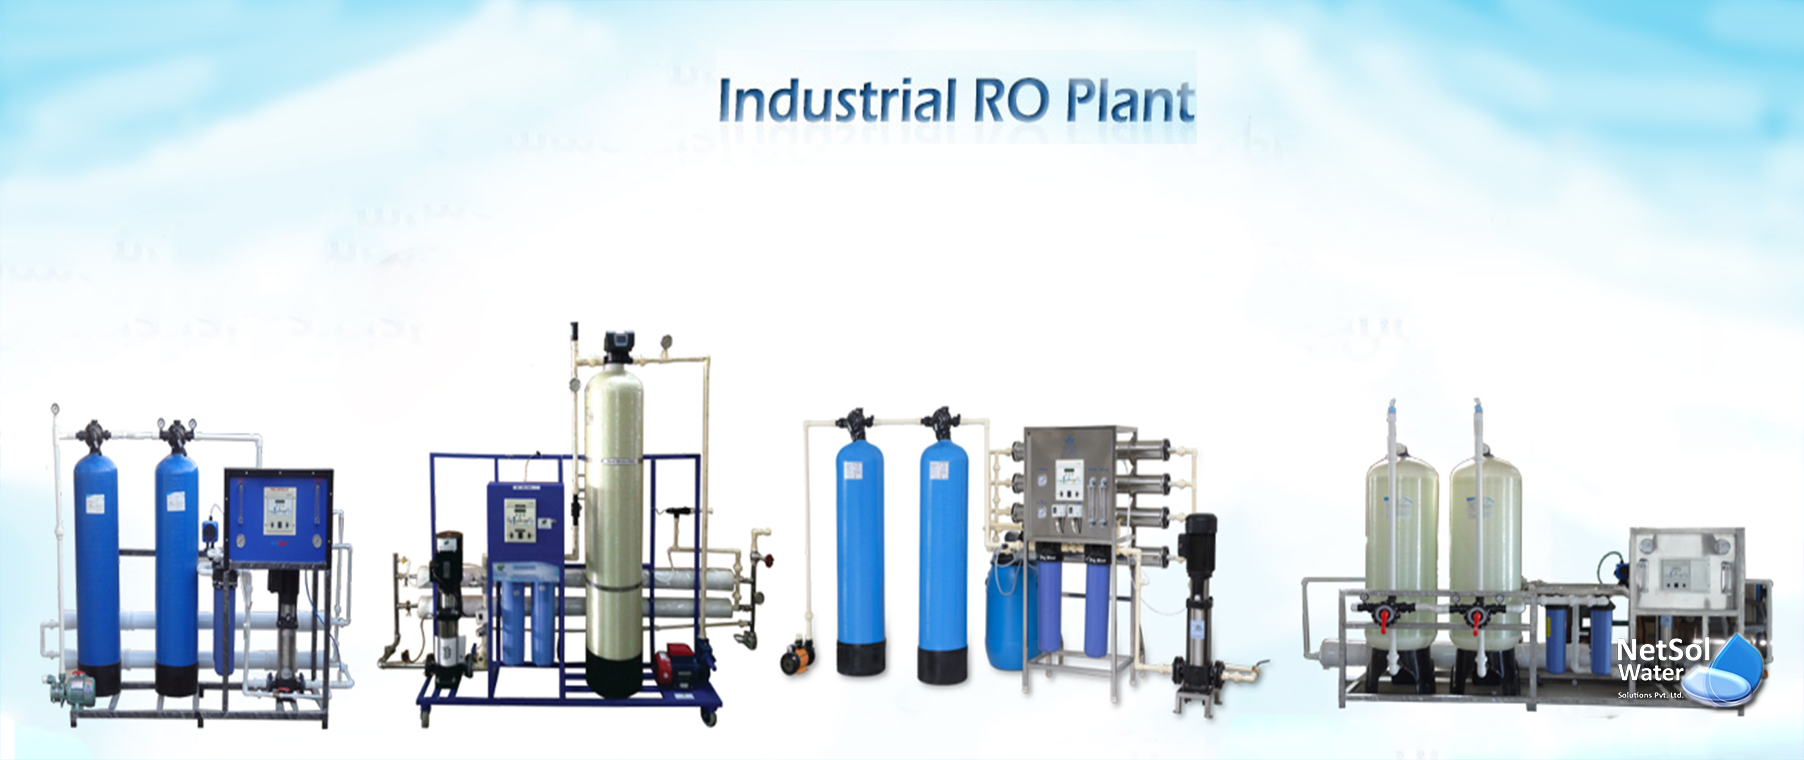 Industrial RO Plant Manufacturer in Delhi-NCR, India 9650608473